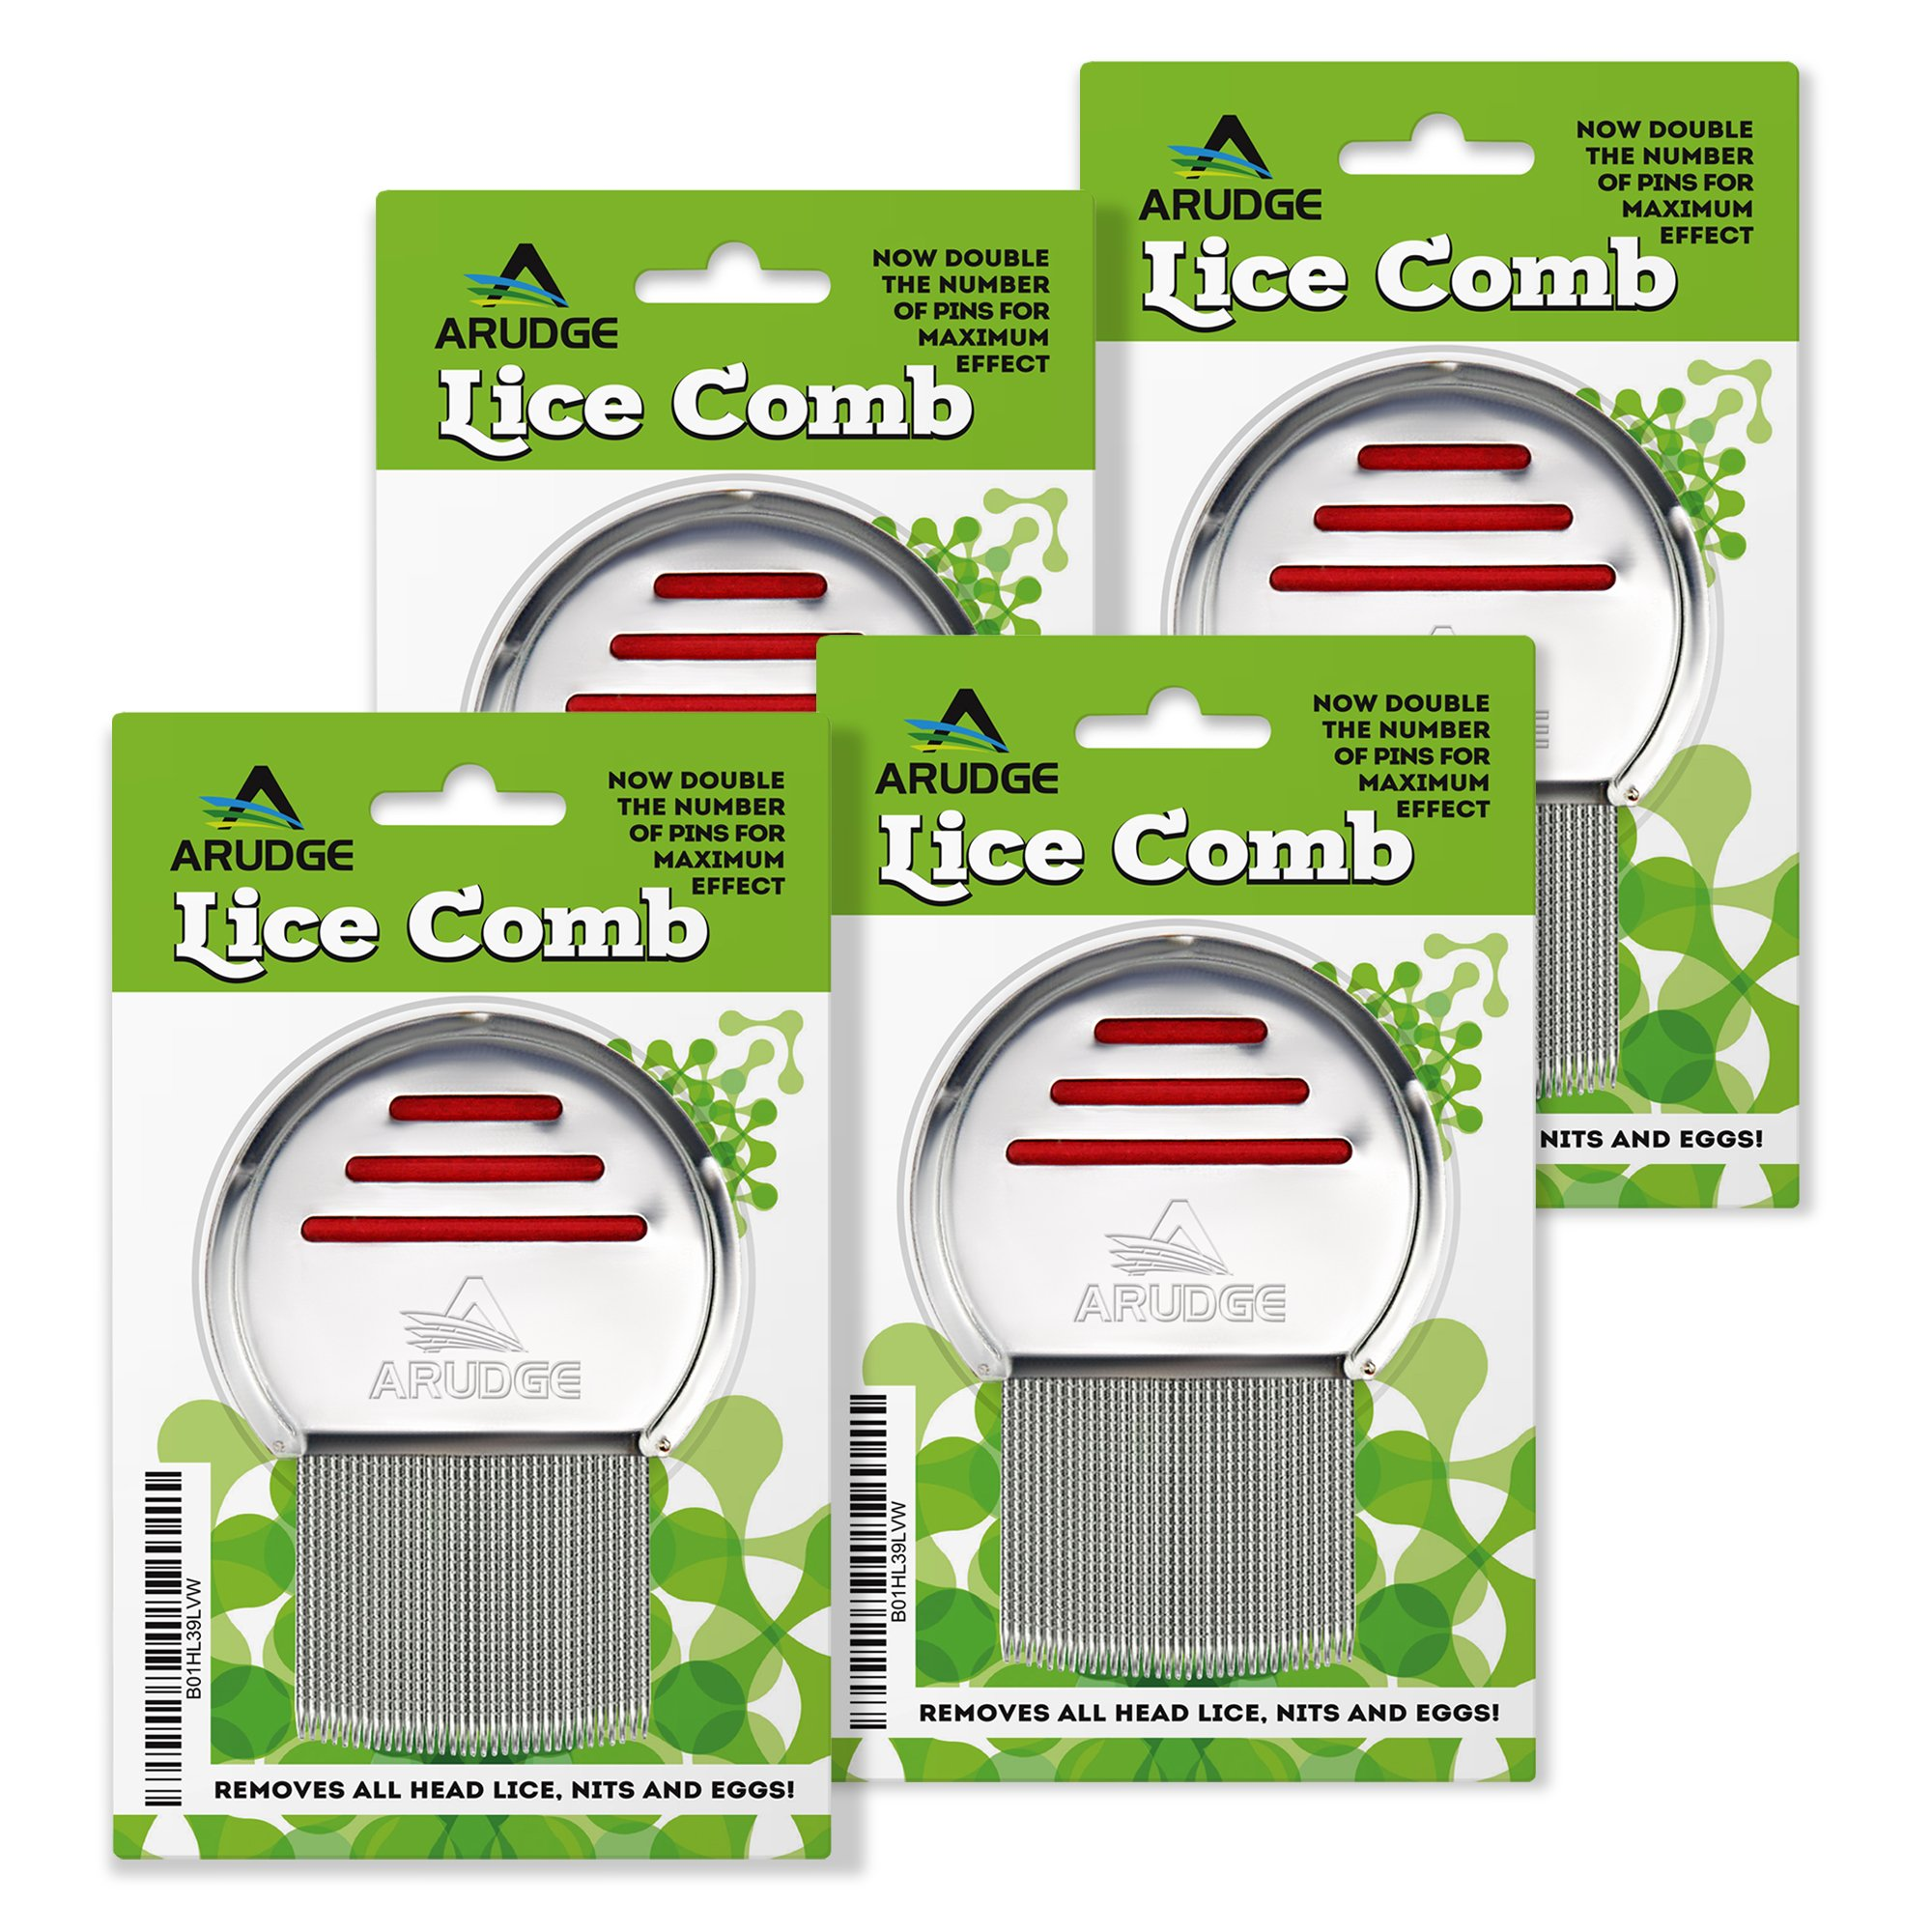 Head Lice Treatment, Egg & Nit Removal Terminator Comb By Arudge - Stainless Steel - Spiral Grooved Teeth - Ergonomic Design With Anti Slip Bands - 4 PACK by Arudge